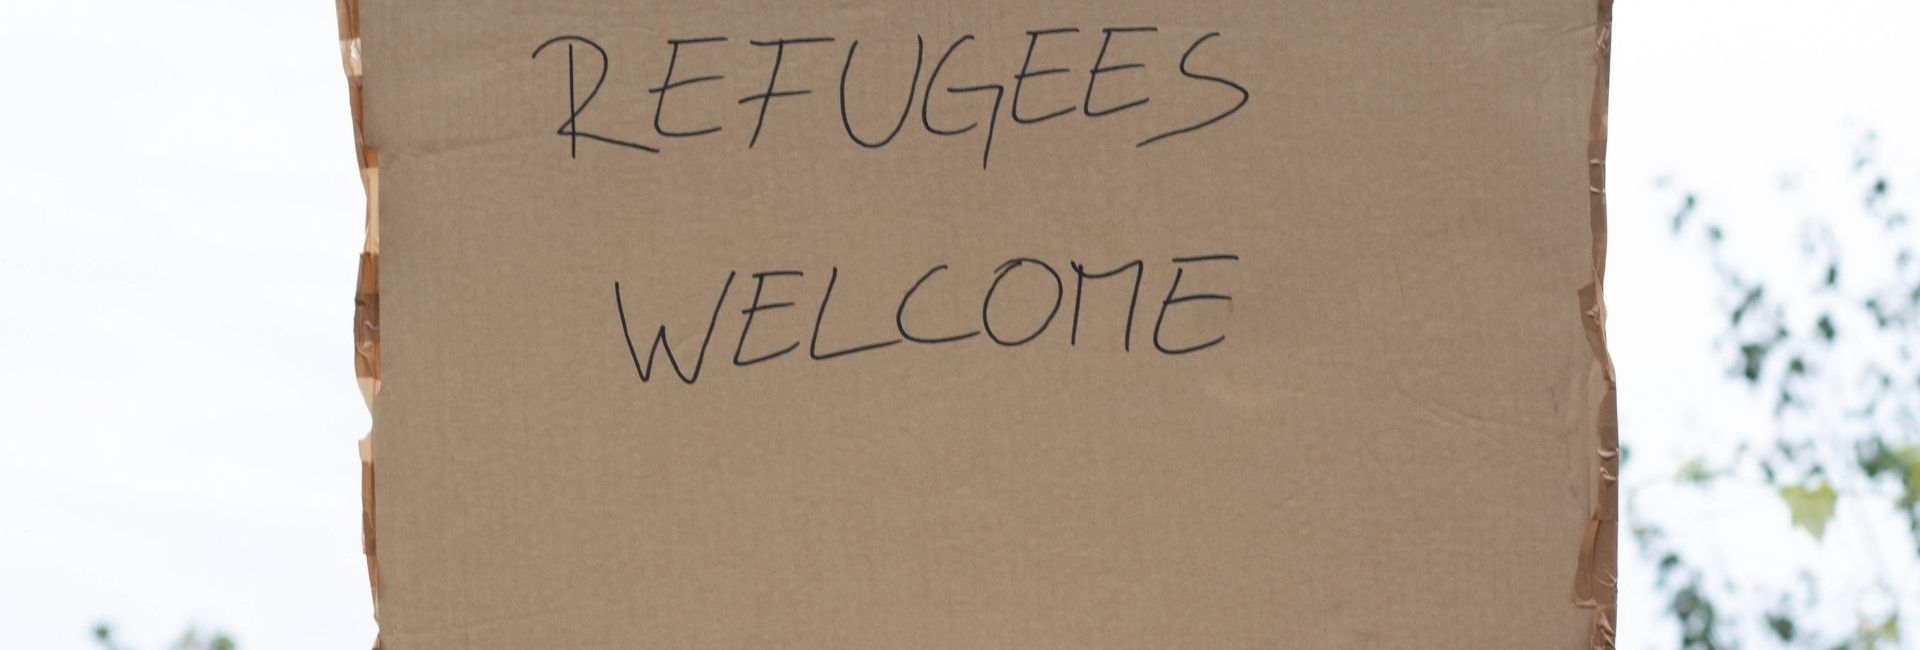 refugees welcome – marco verch flickr